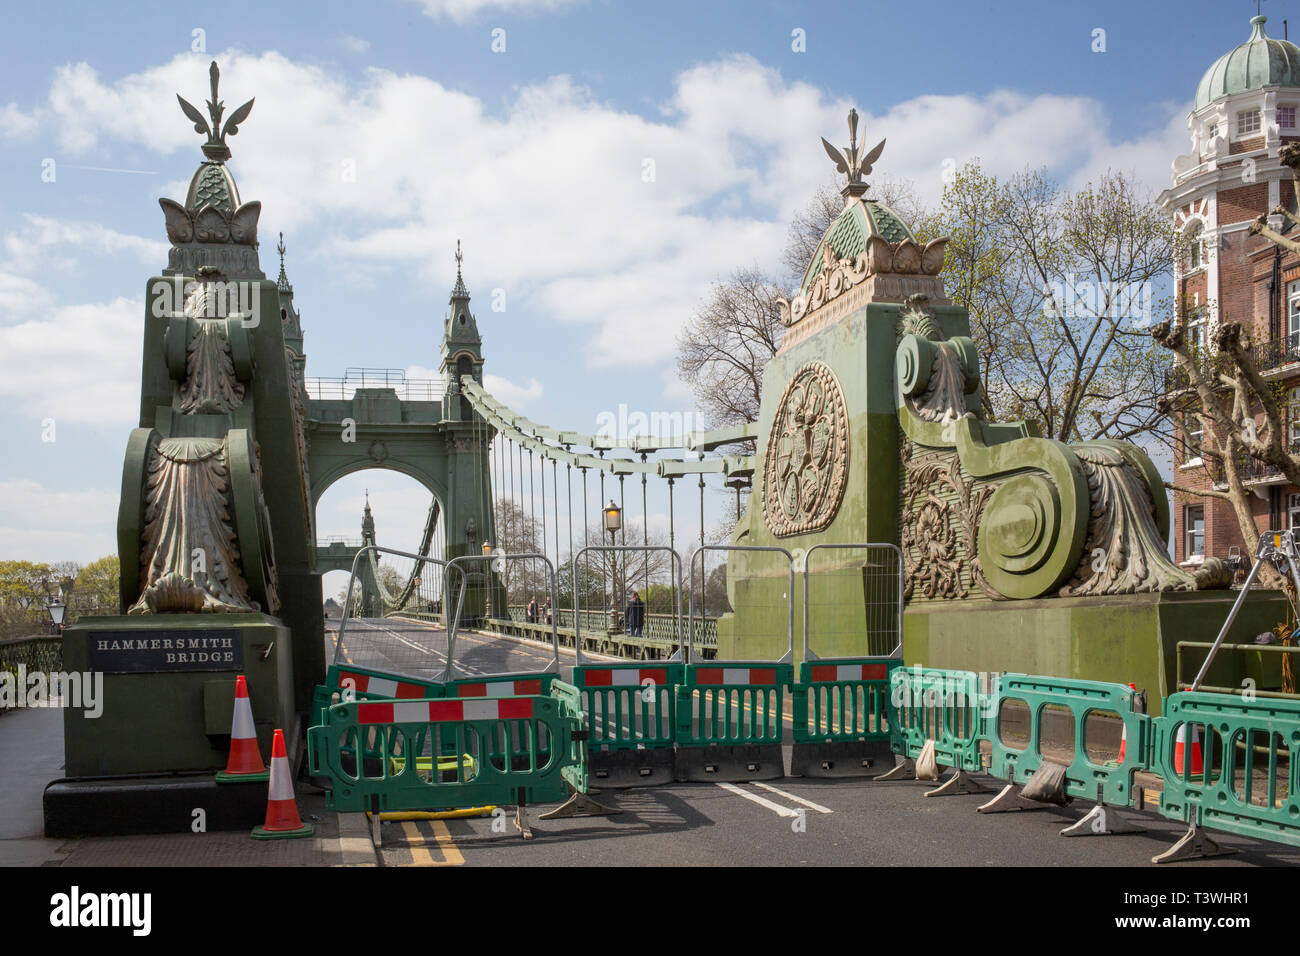 After being closed indefinitely to all traffic due to structural faults, an architectural detail of Hammersmith Bridge, on 11th April 2019, in west London, England. Safety checks revealed 'critical faults' and Hammersmith and Fulham Council has said it's ben left with no choice but to shut the bridge until refurbishment costs could be met. The government has said that between 2015 and 2021 its is providing £11bn of support to the 132-year-old bridge. - Stock Image